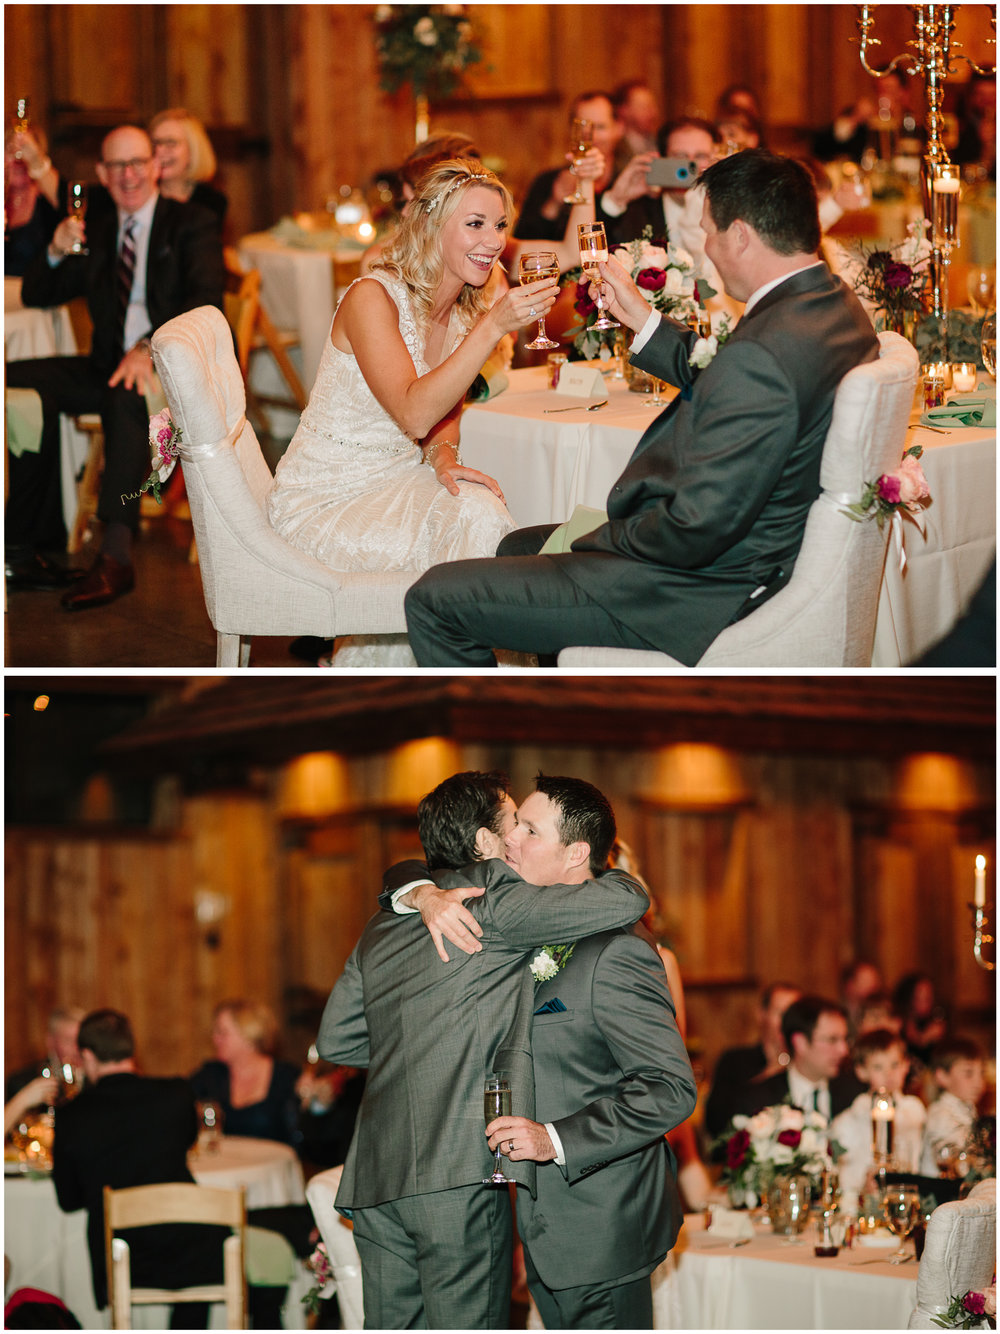 spruce_mountain_ranch_wedding_69.jpg